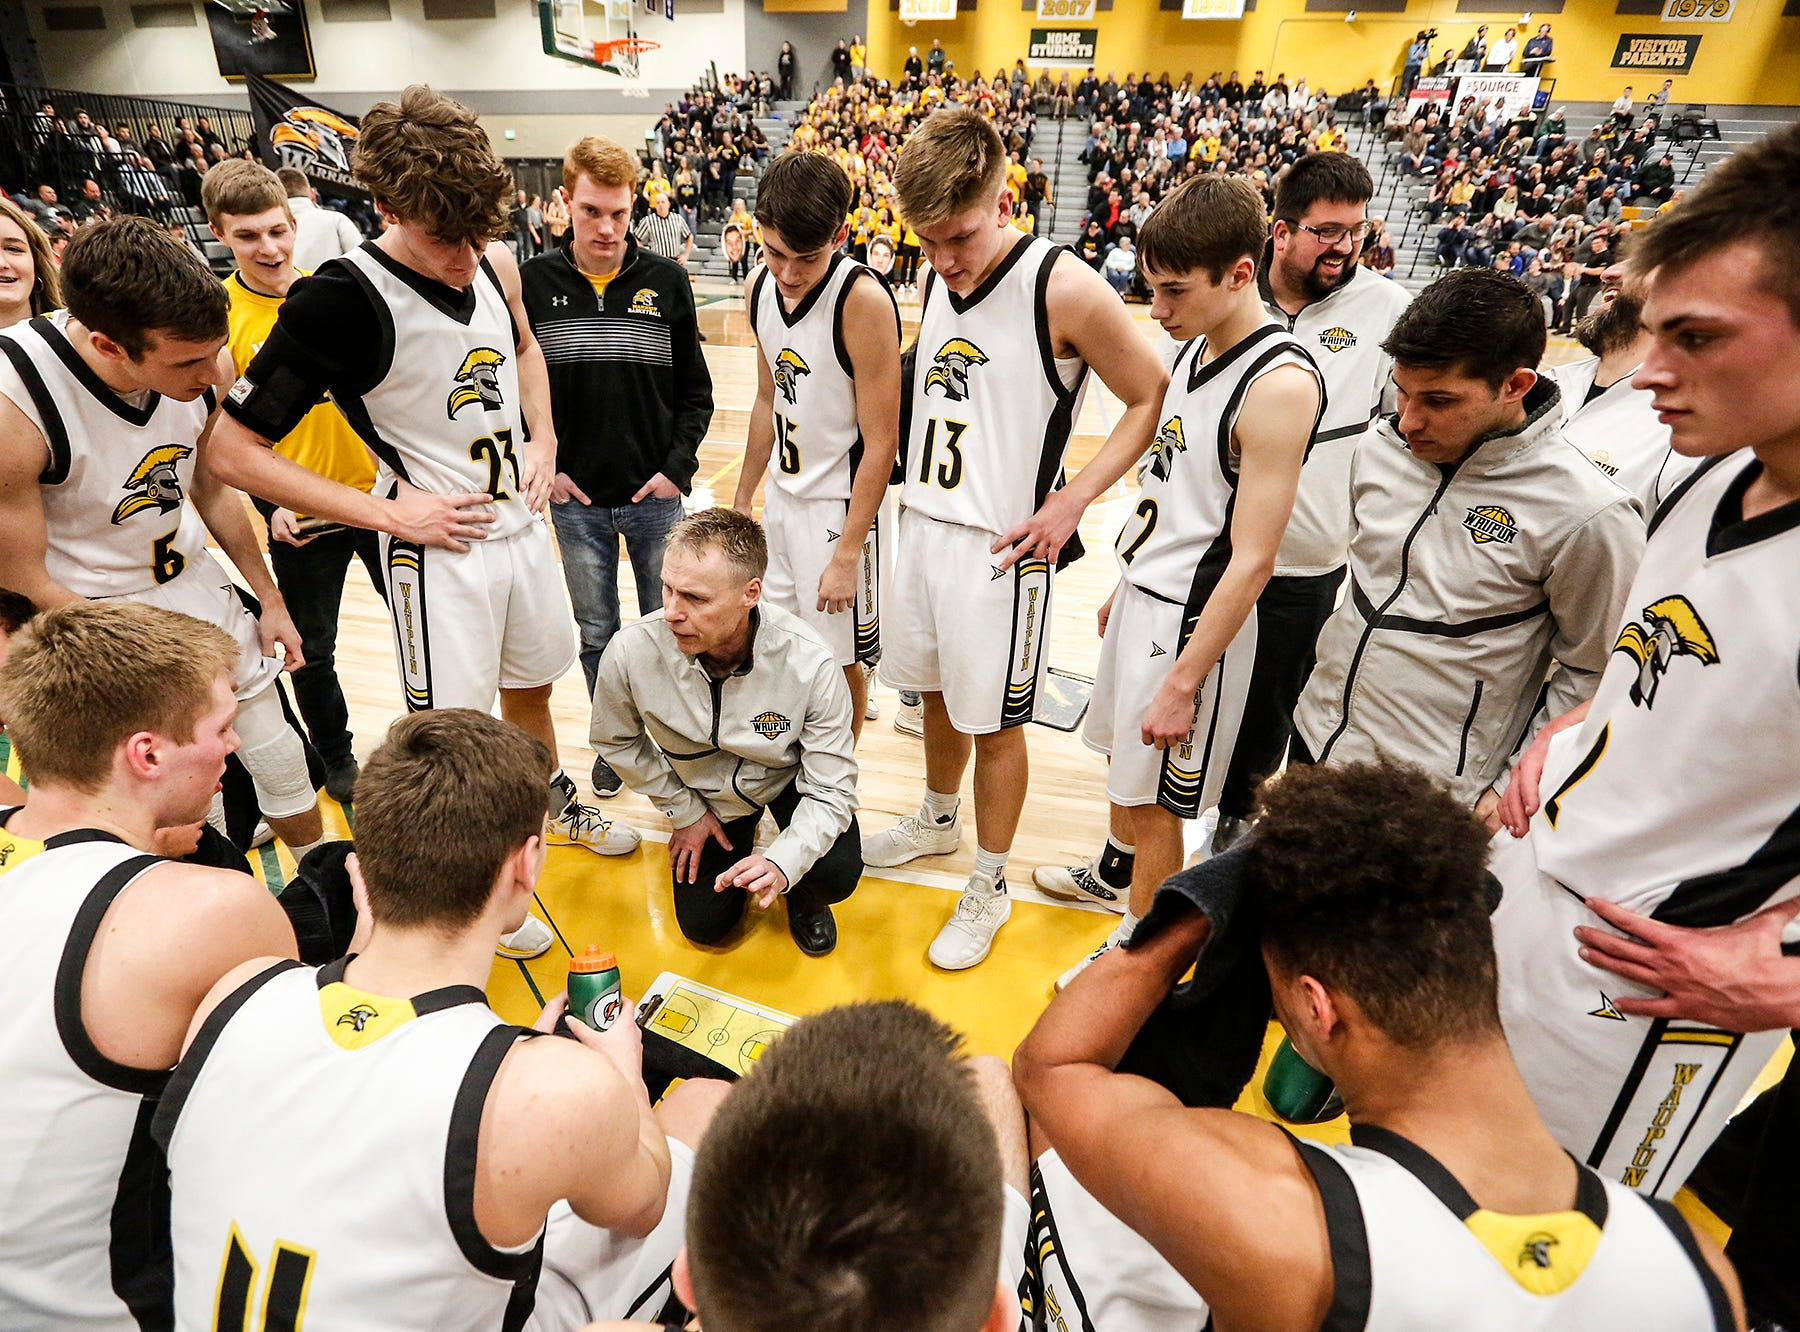 Waupun High School boys basketball's coach Dan Domask talks with his team during a time out during their WIAA division 3 sectional semi-final game against Columbus High School Thursday, March 7, 2019 in Beaver Dam, Wis. Waupun won the game 79-36. Doug Raflik/USA TODAY NETWORK-Wisconsin